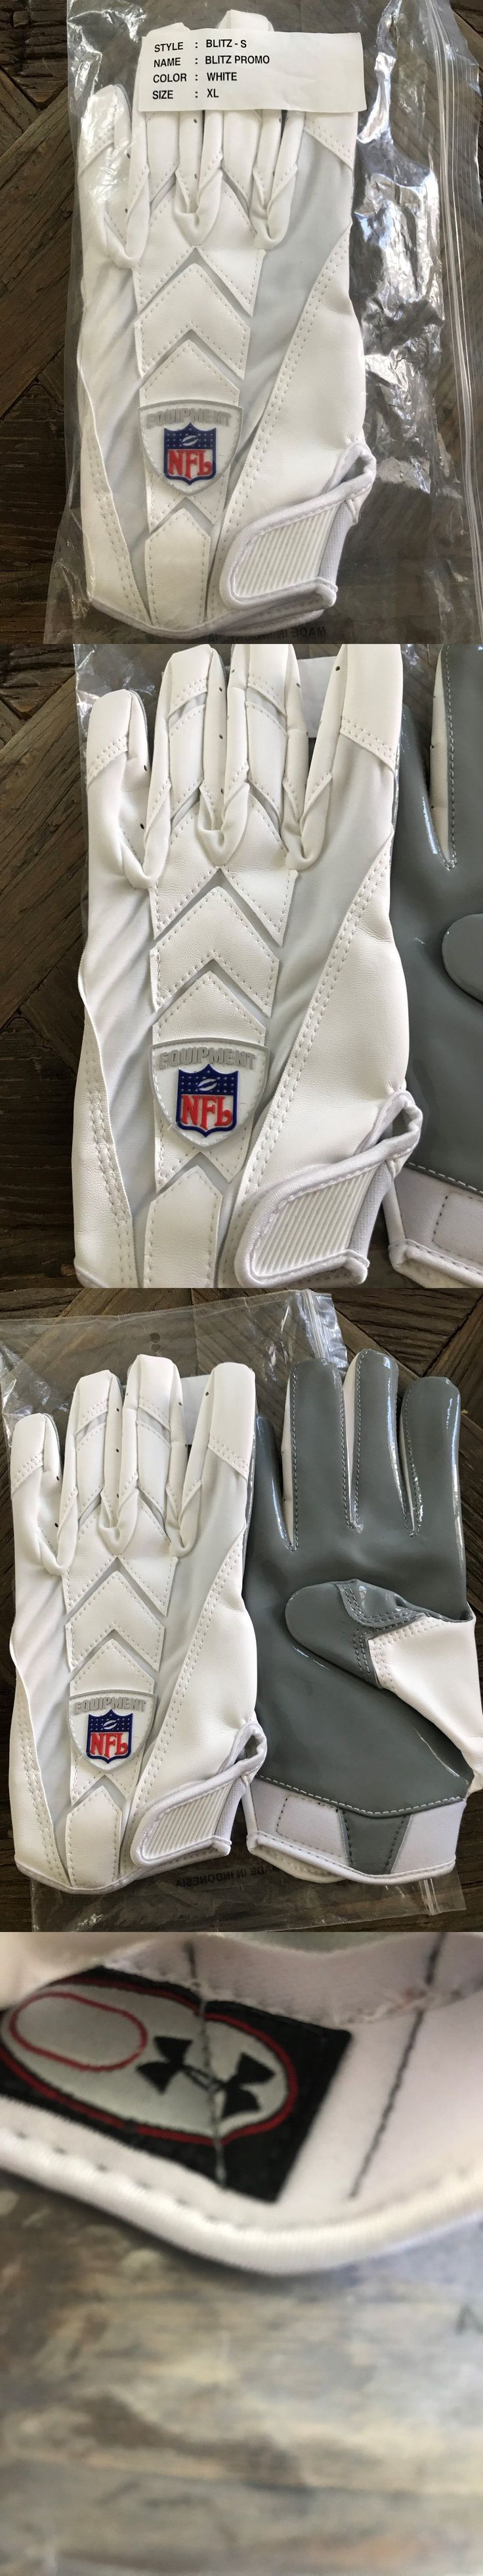 Gloves 159114: Under Armour Nfl Blitz Gloves Men - White - Xl -> BUY IT NOW ONLY: $55 on eBay!